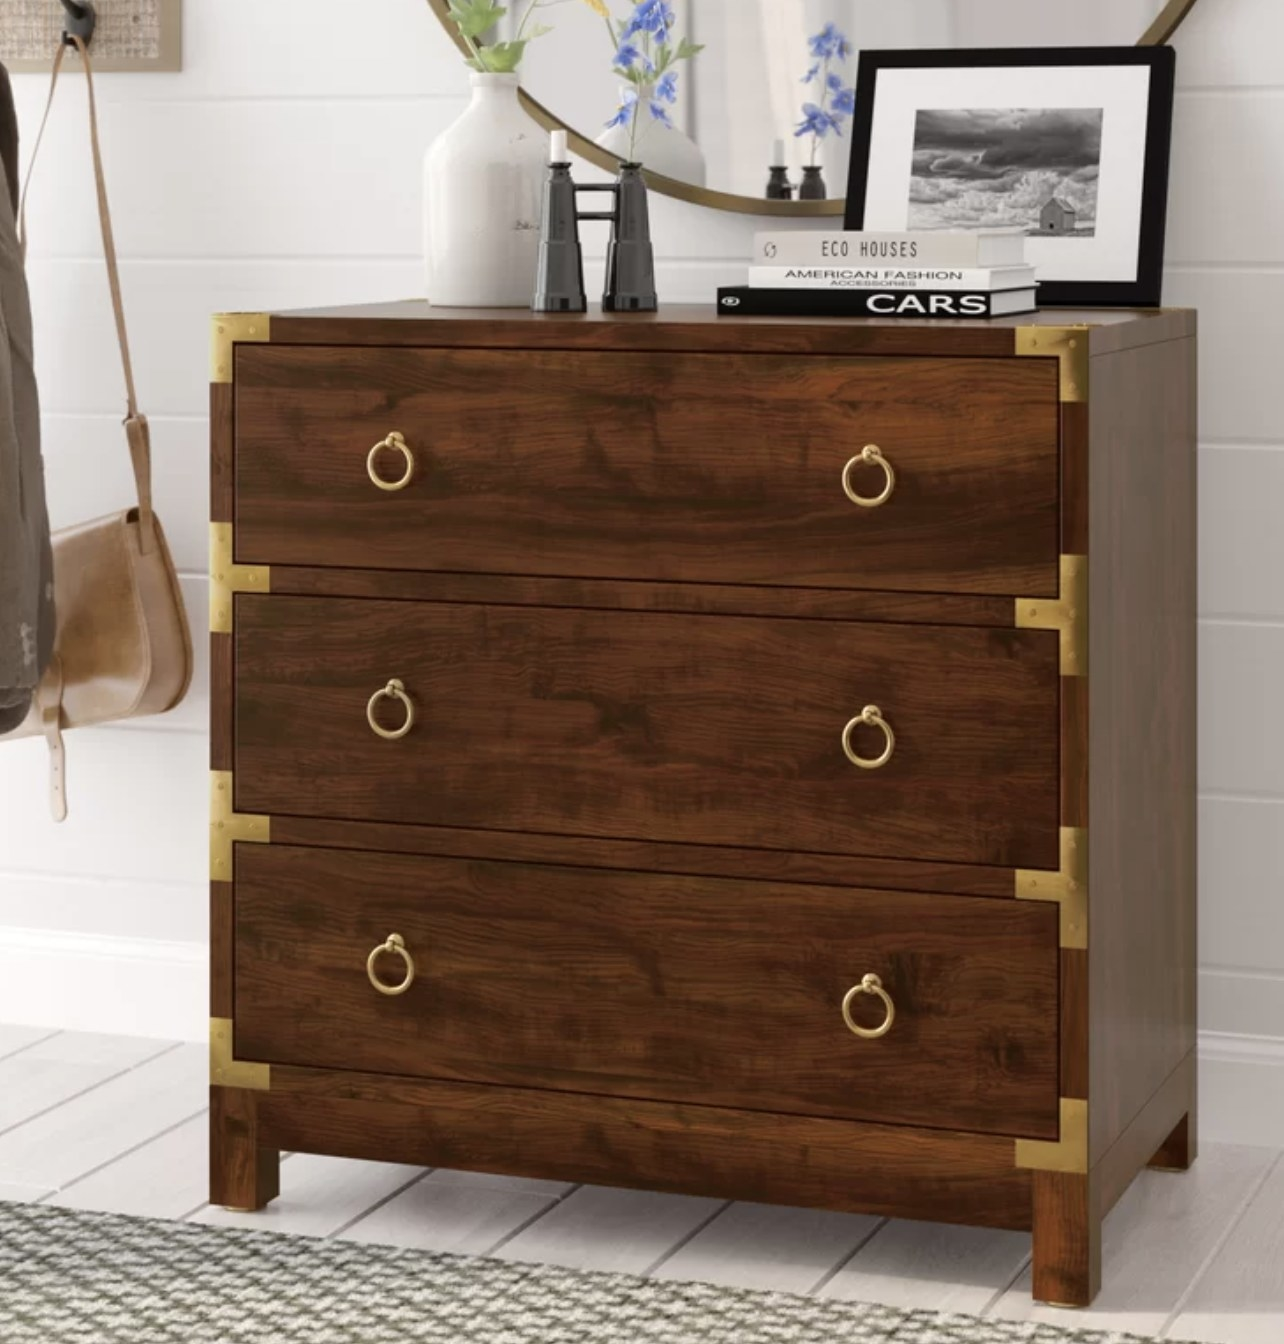 the drawer unit in brown with gold accents